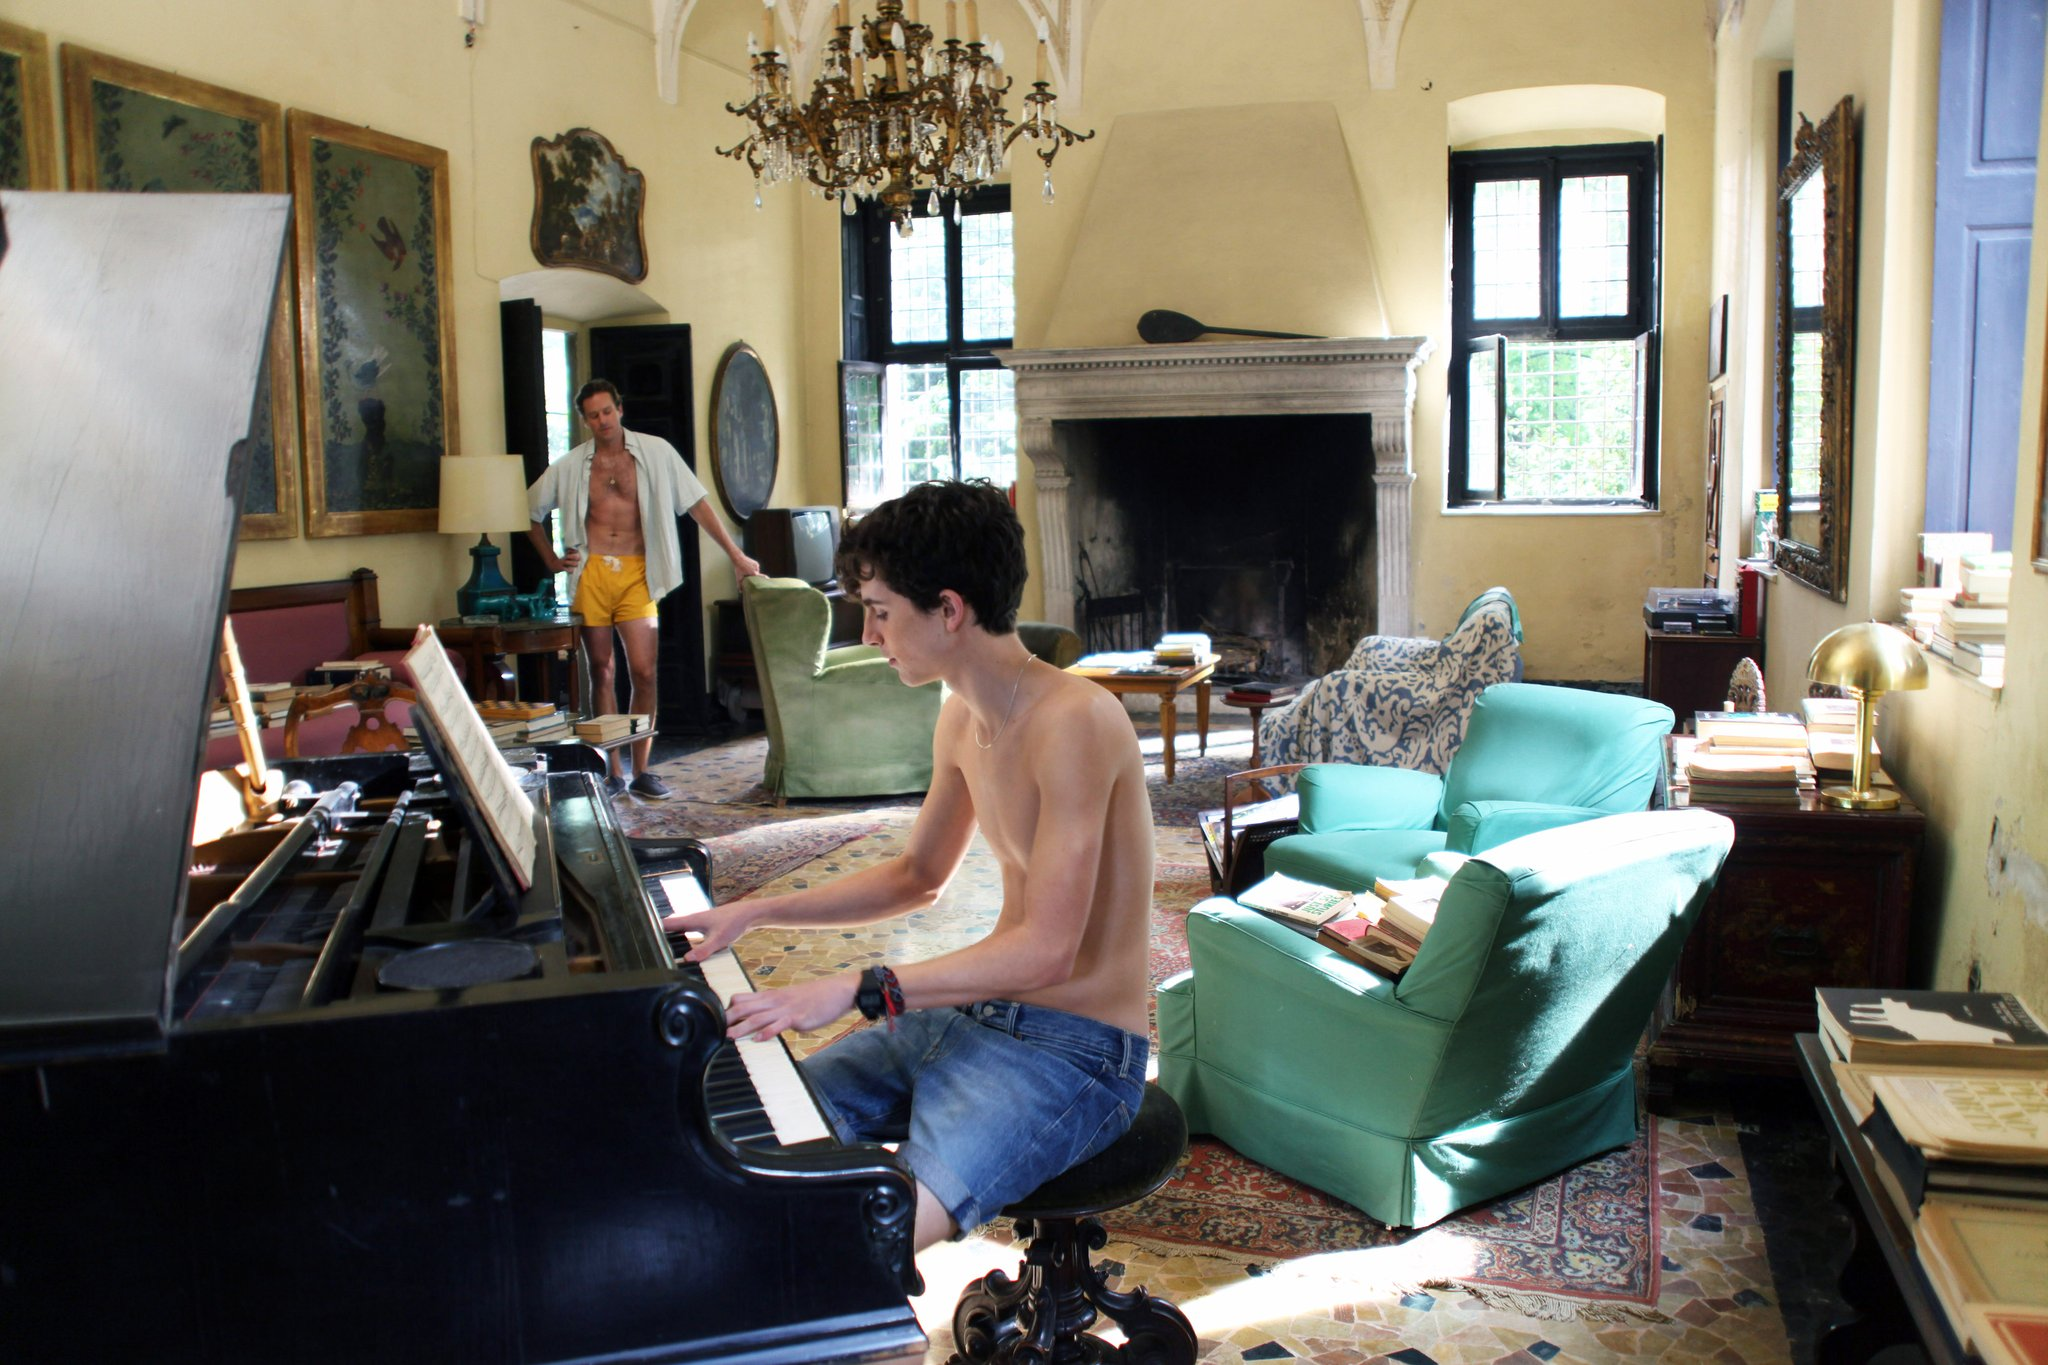 Inside The Screen The 80's Feeling In Call Me by Your Name 6